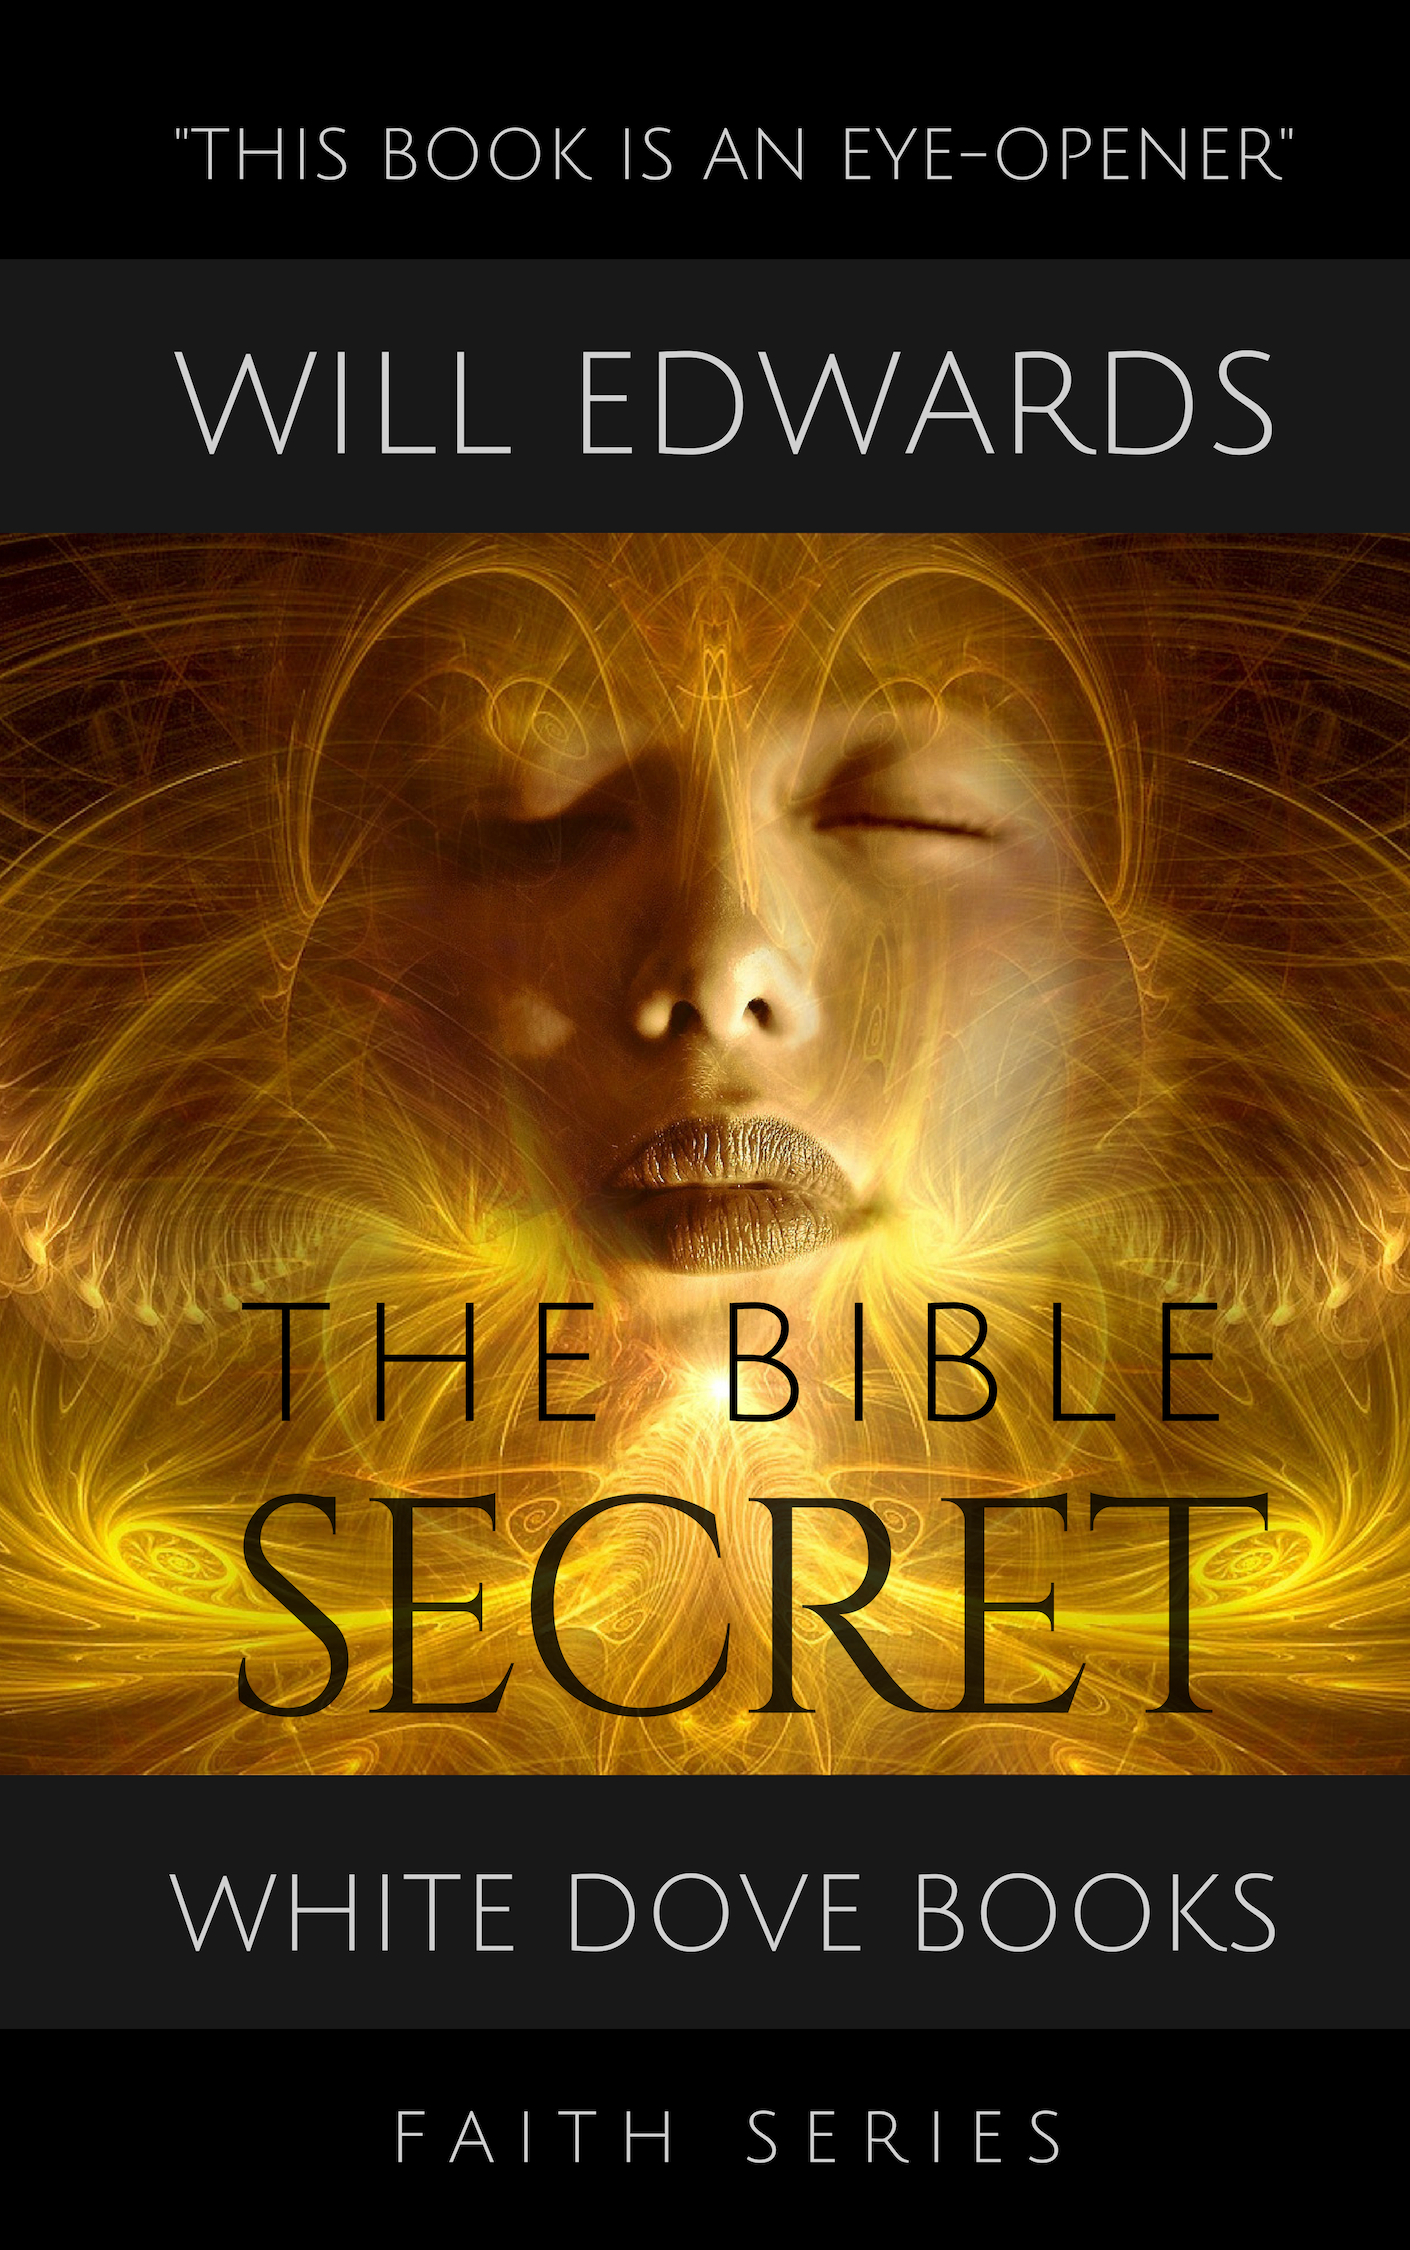 The Bible Secret